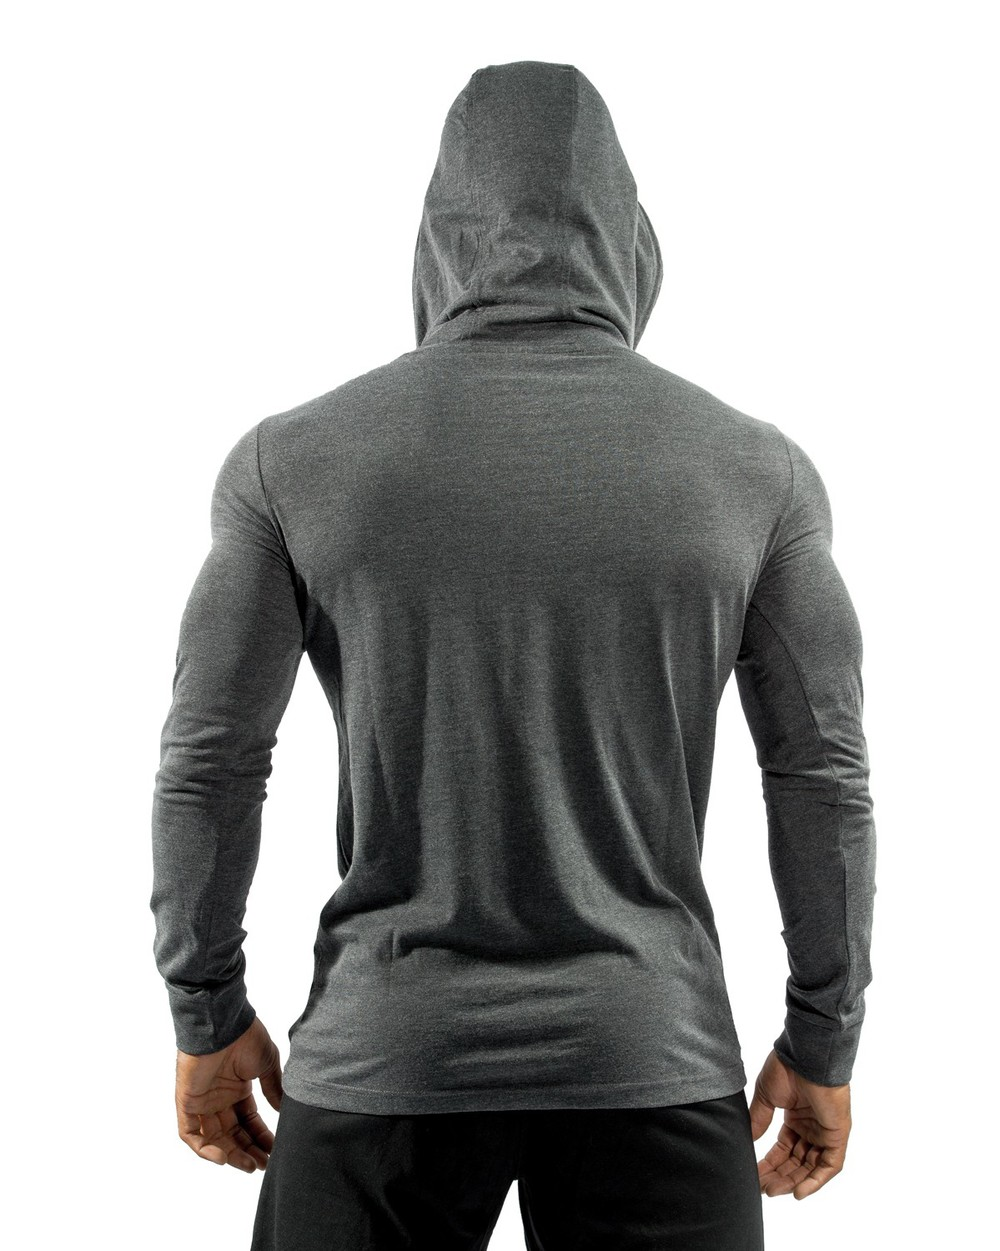 Hooded T Shirts For Men